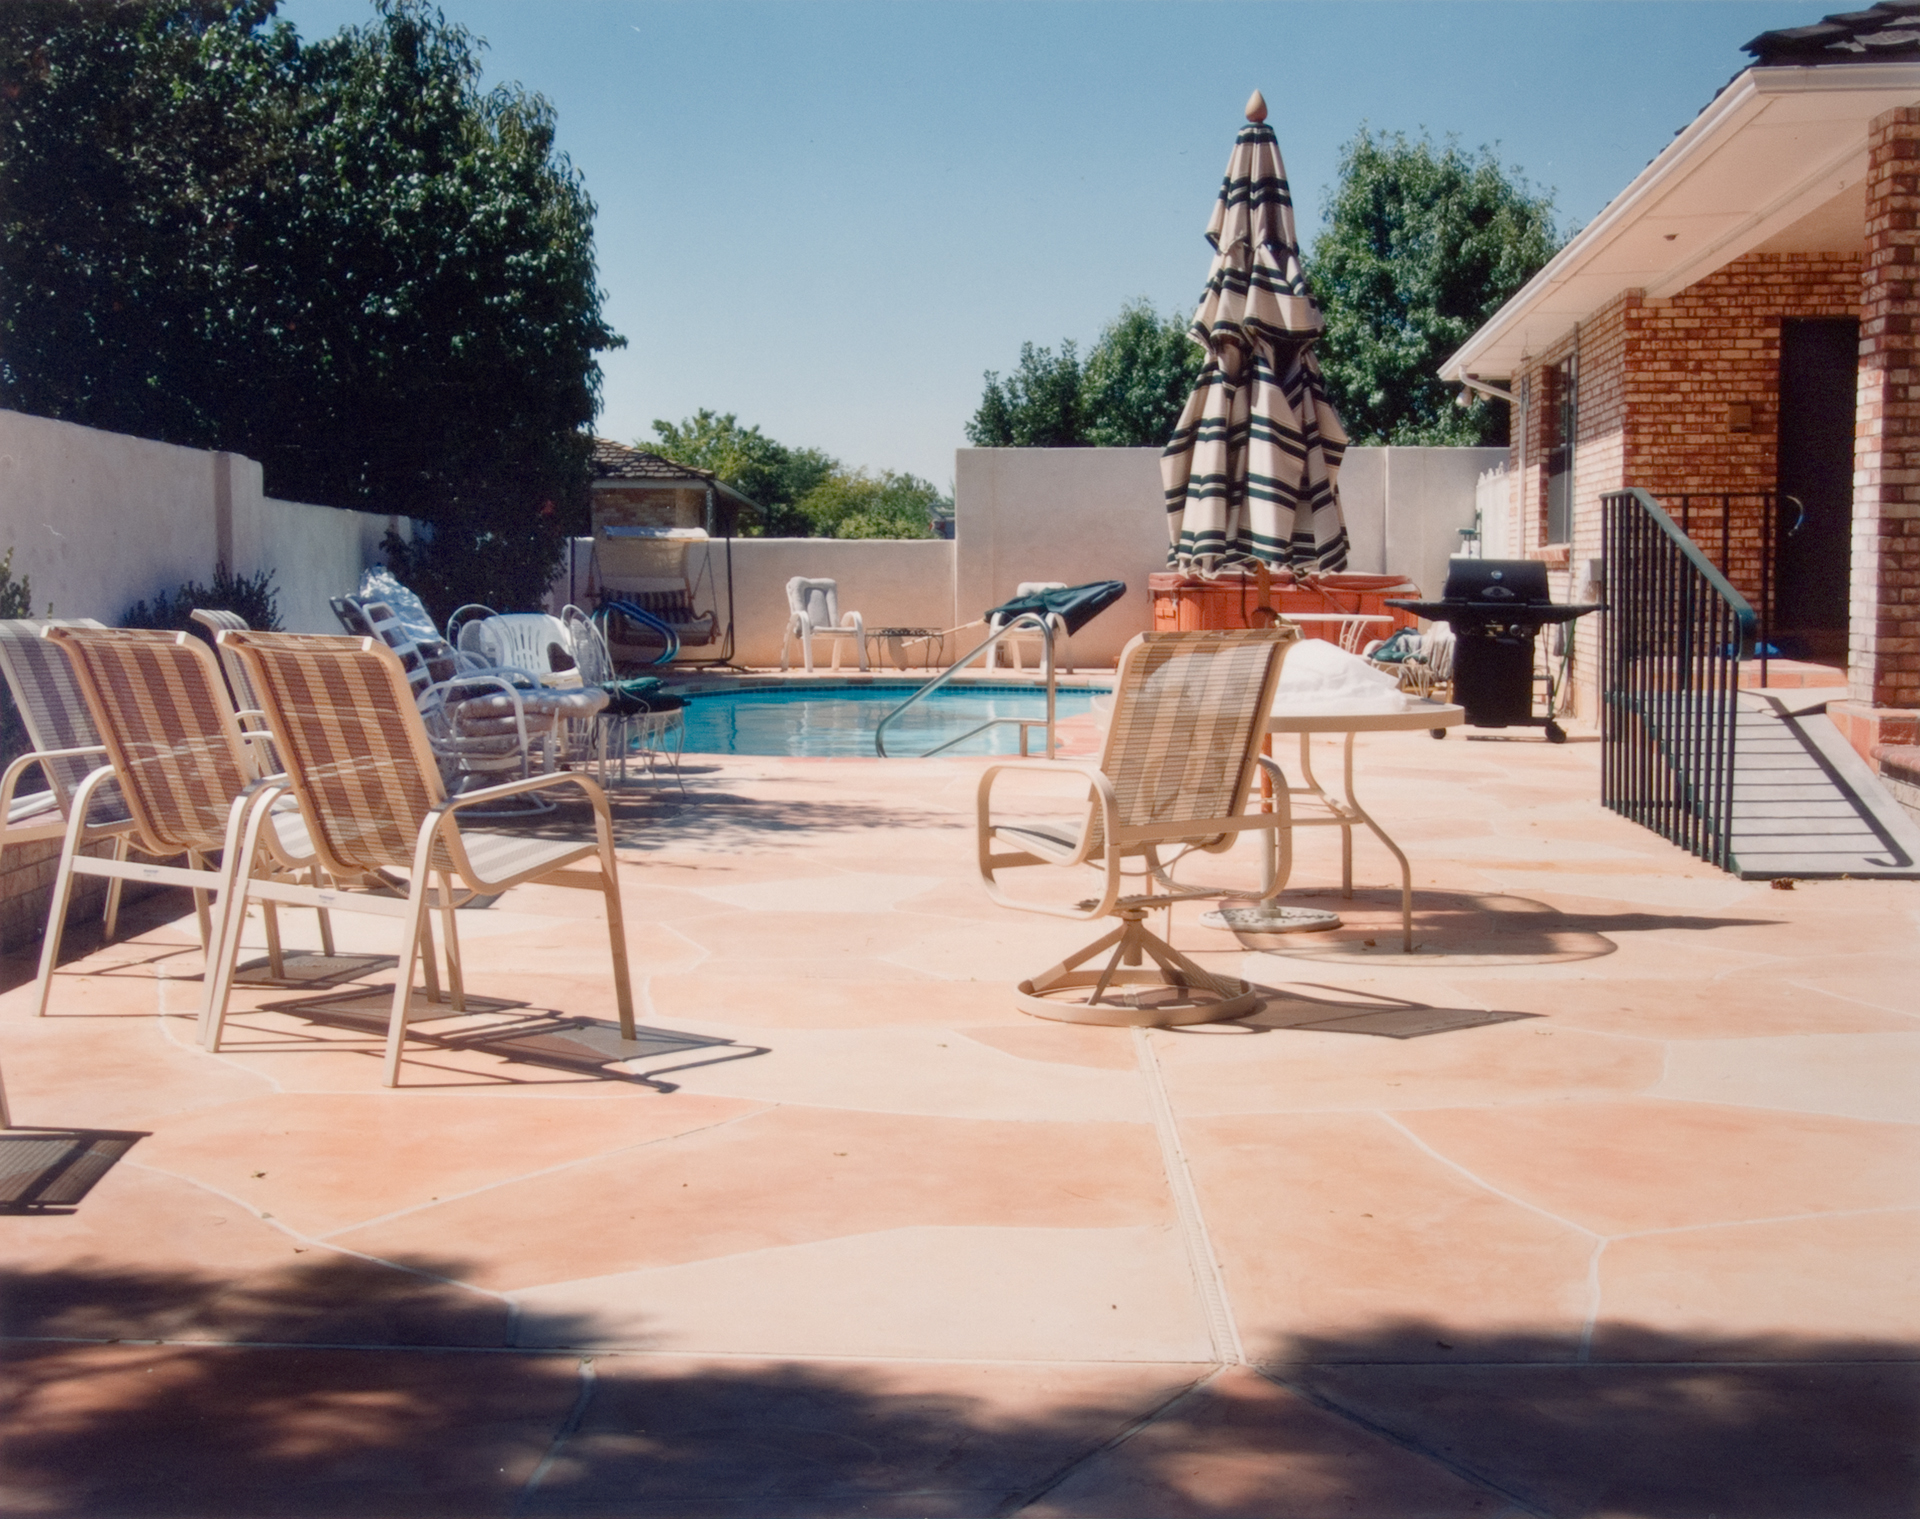 Pool 3 , Chromogenic Print, 8 x10 on 16 x 20 paper, 2001